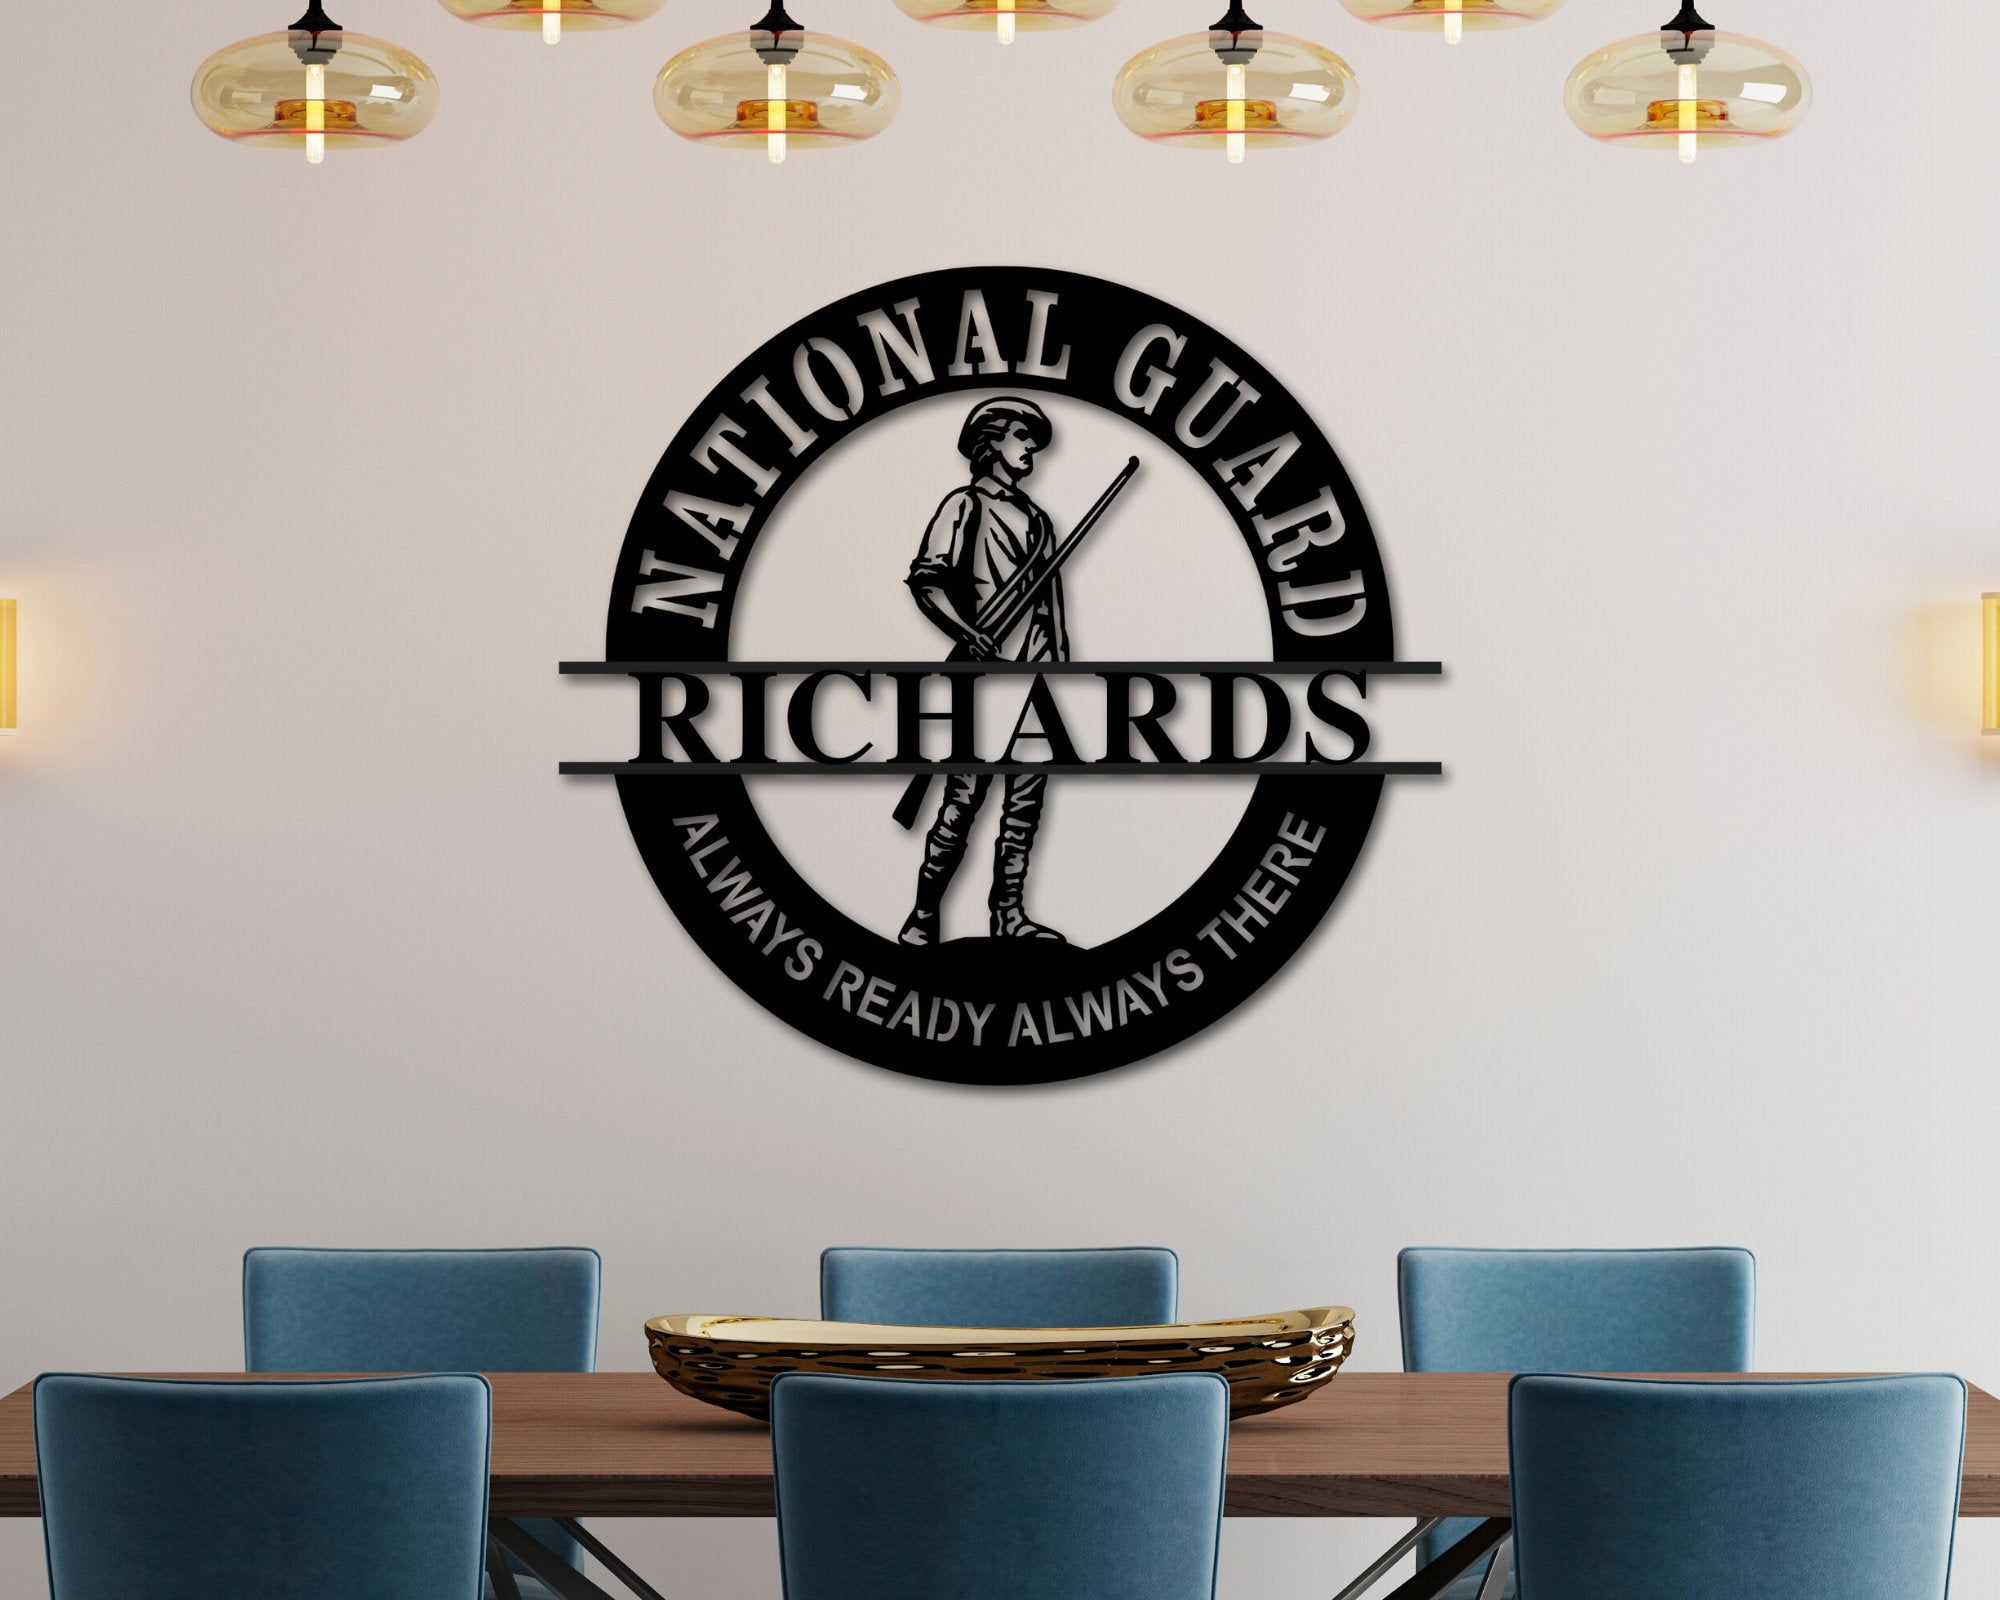 Personalized National Guard Gifts, National Guard Emblem, Personalized Metal Name Sign, Custom National Guard Name Sign, Military Retirement